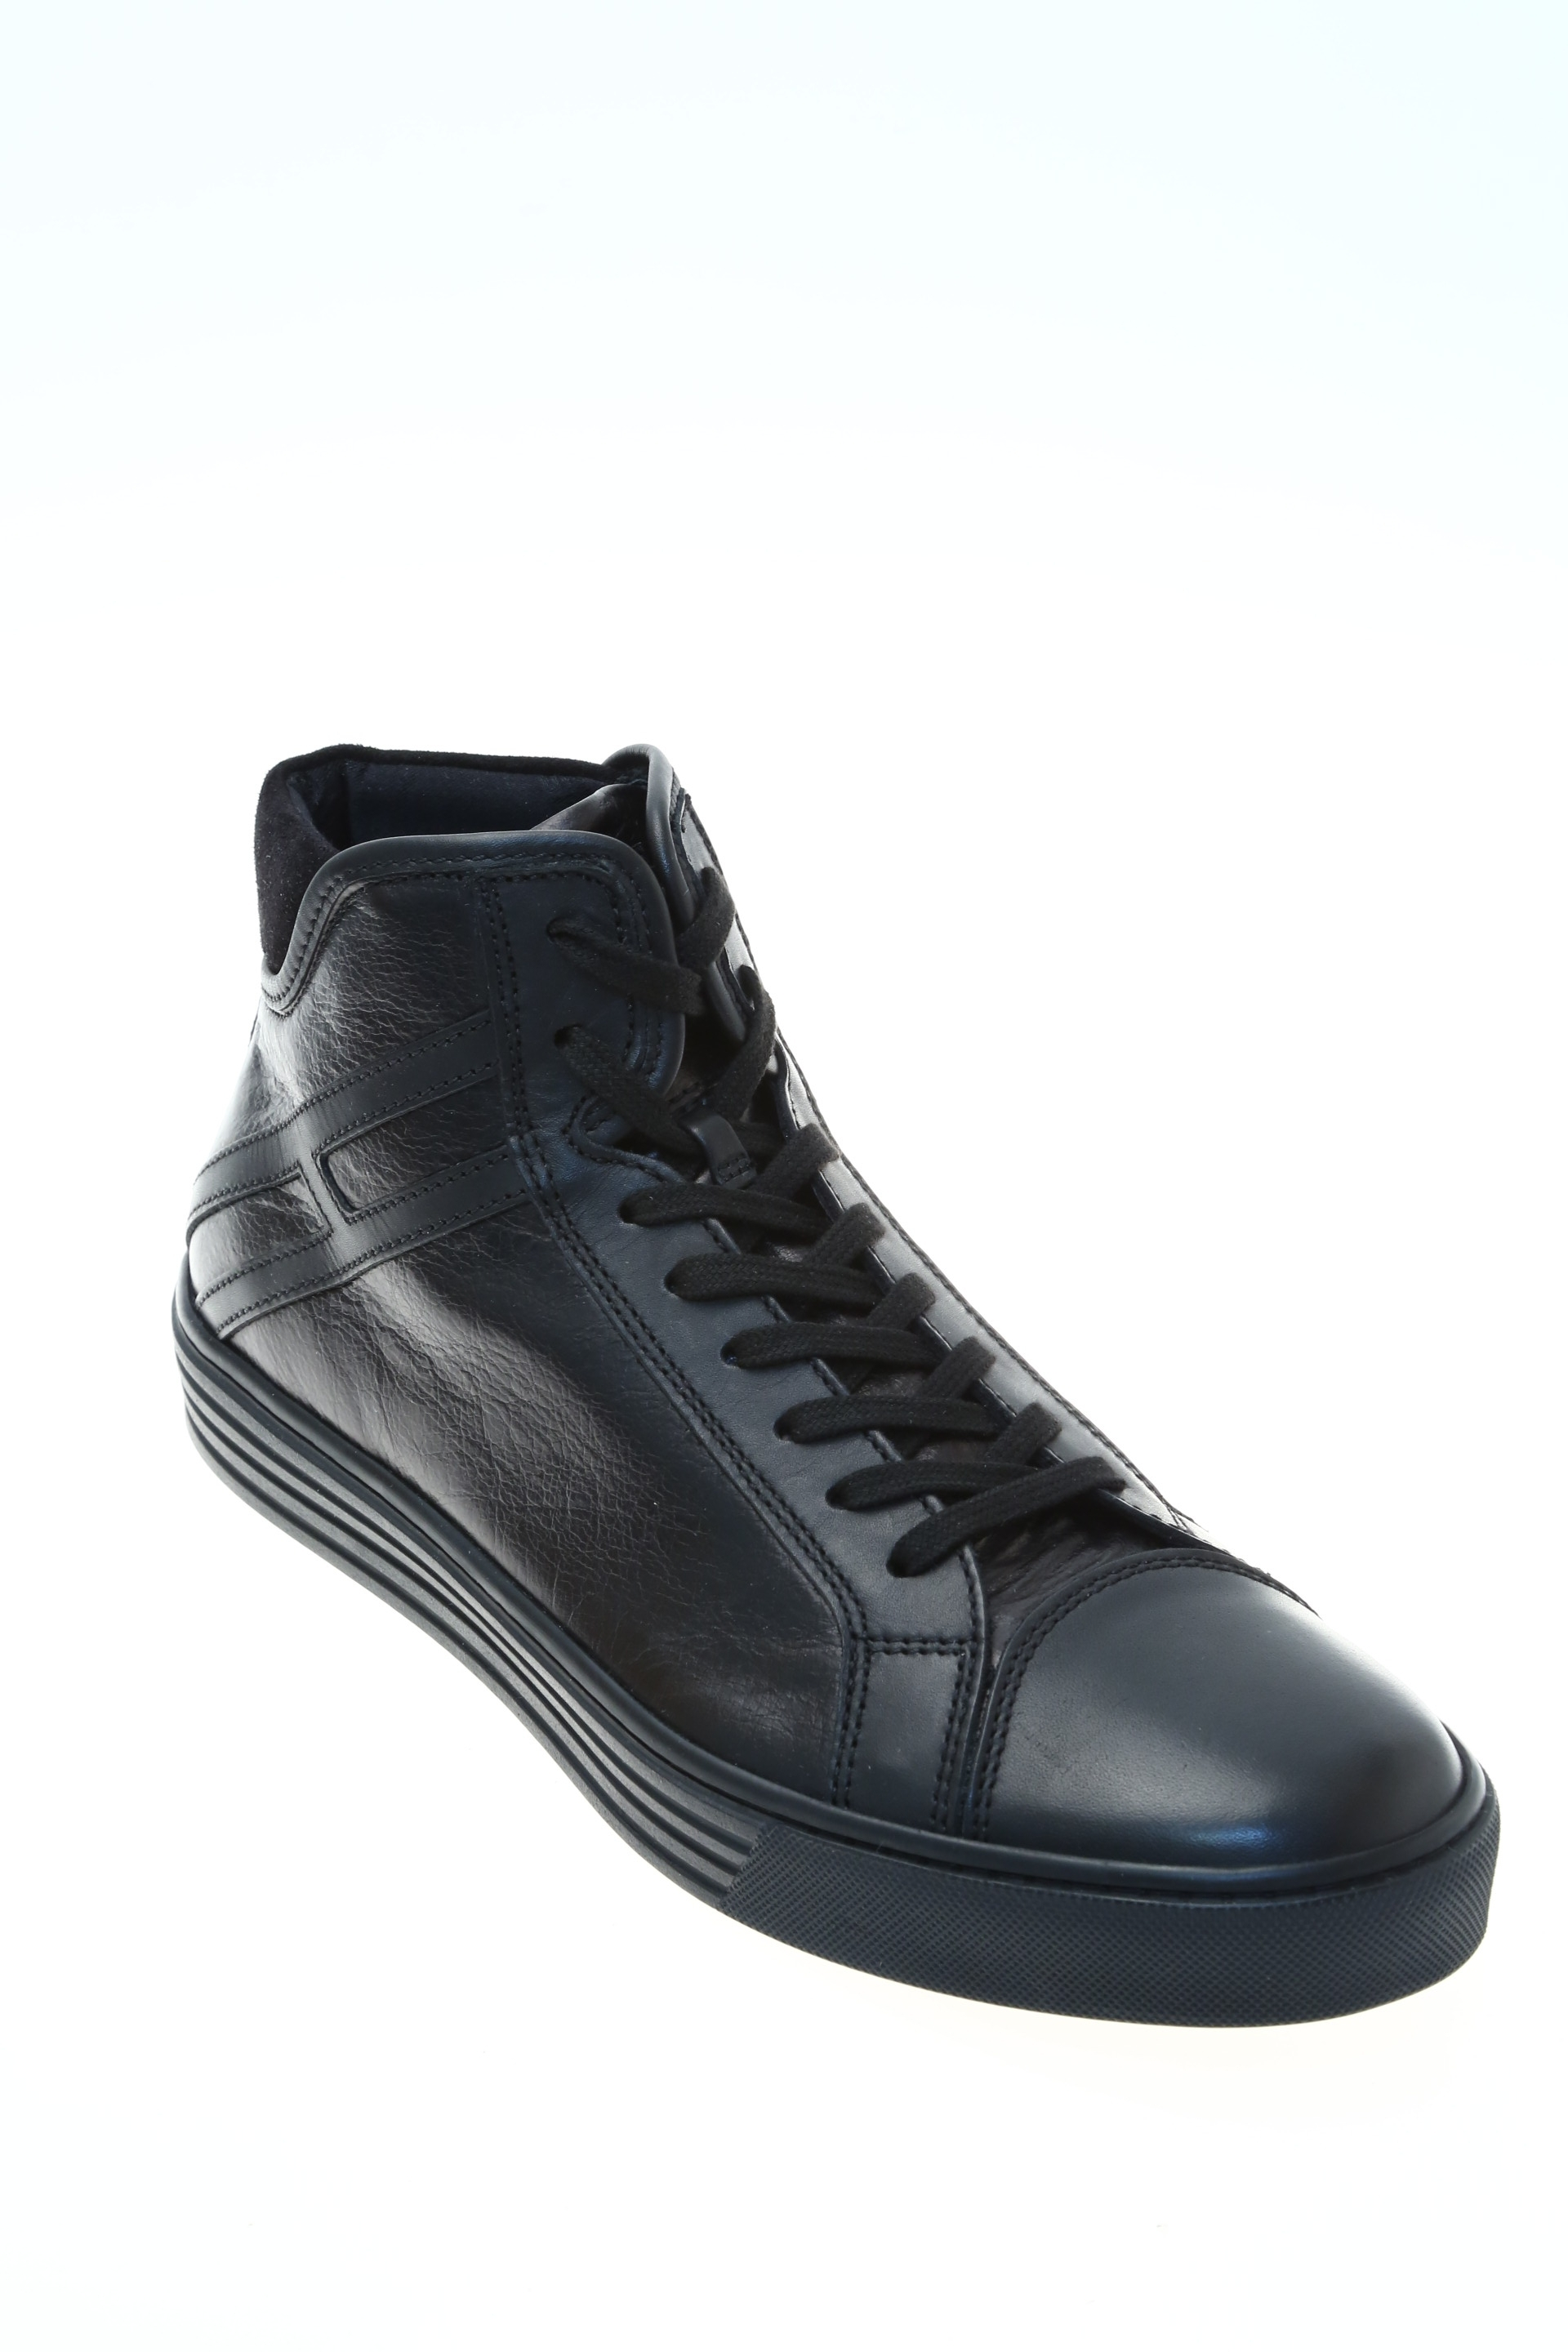 hogan rebel uomo 44